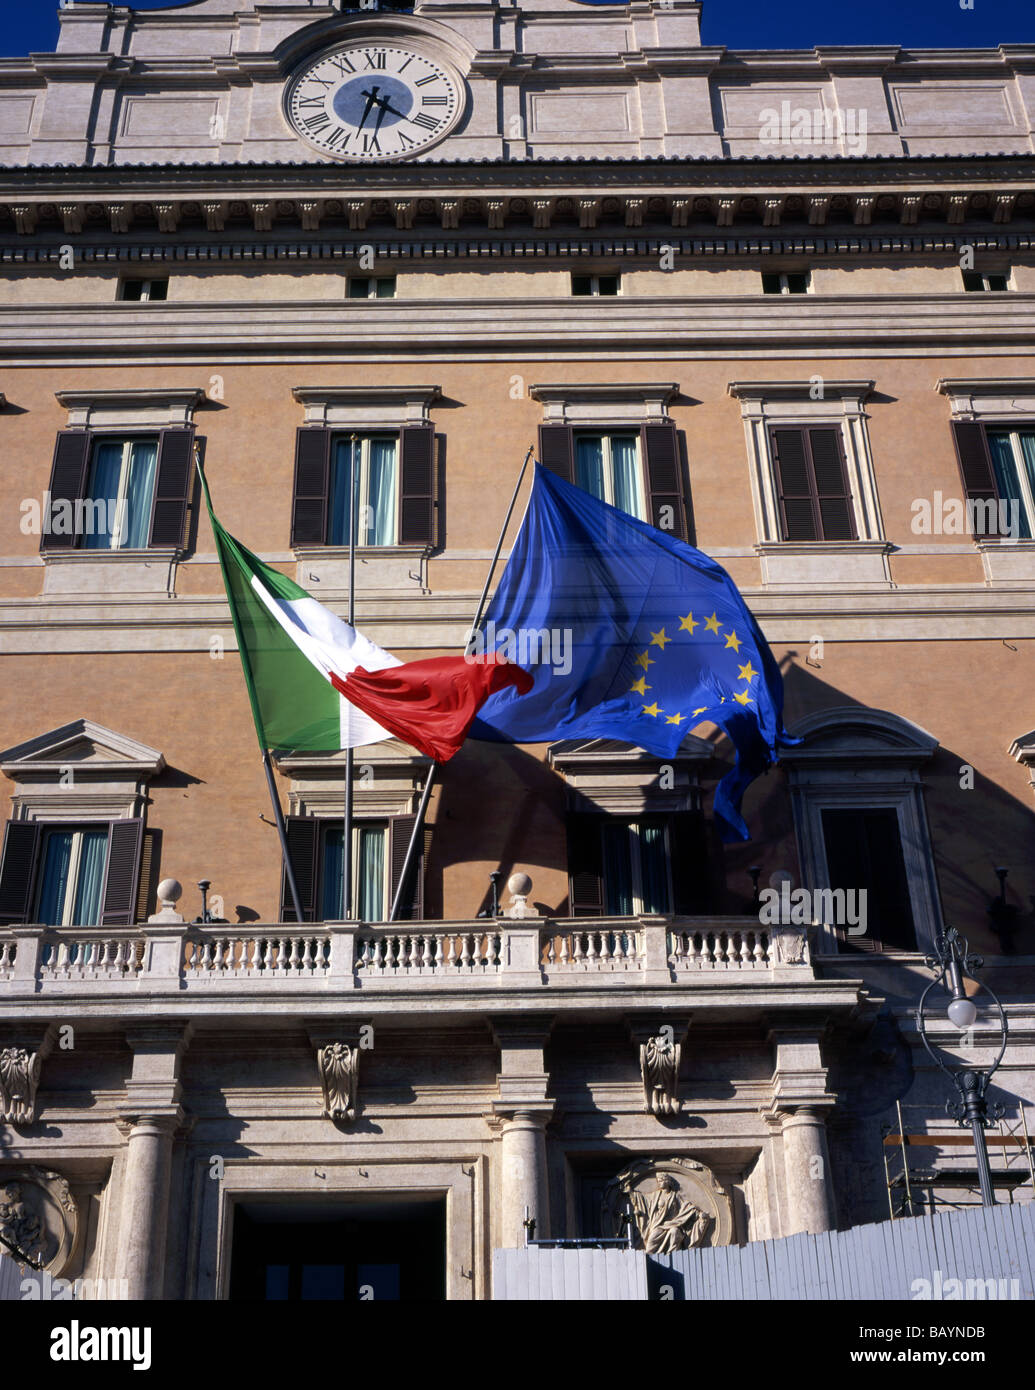 Italian and European Union Flags flying above the rear entrance to The Italian Parliament, The Palazzo di Montecitorio, Stock Photo